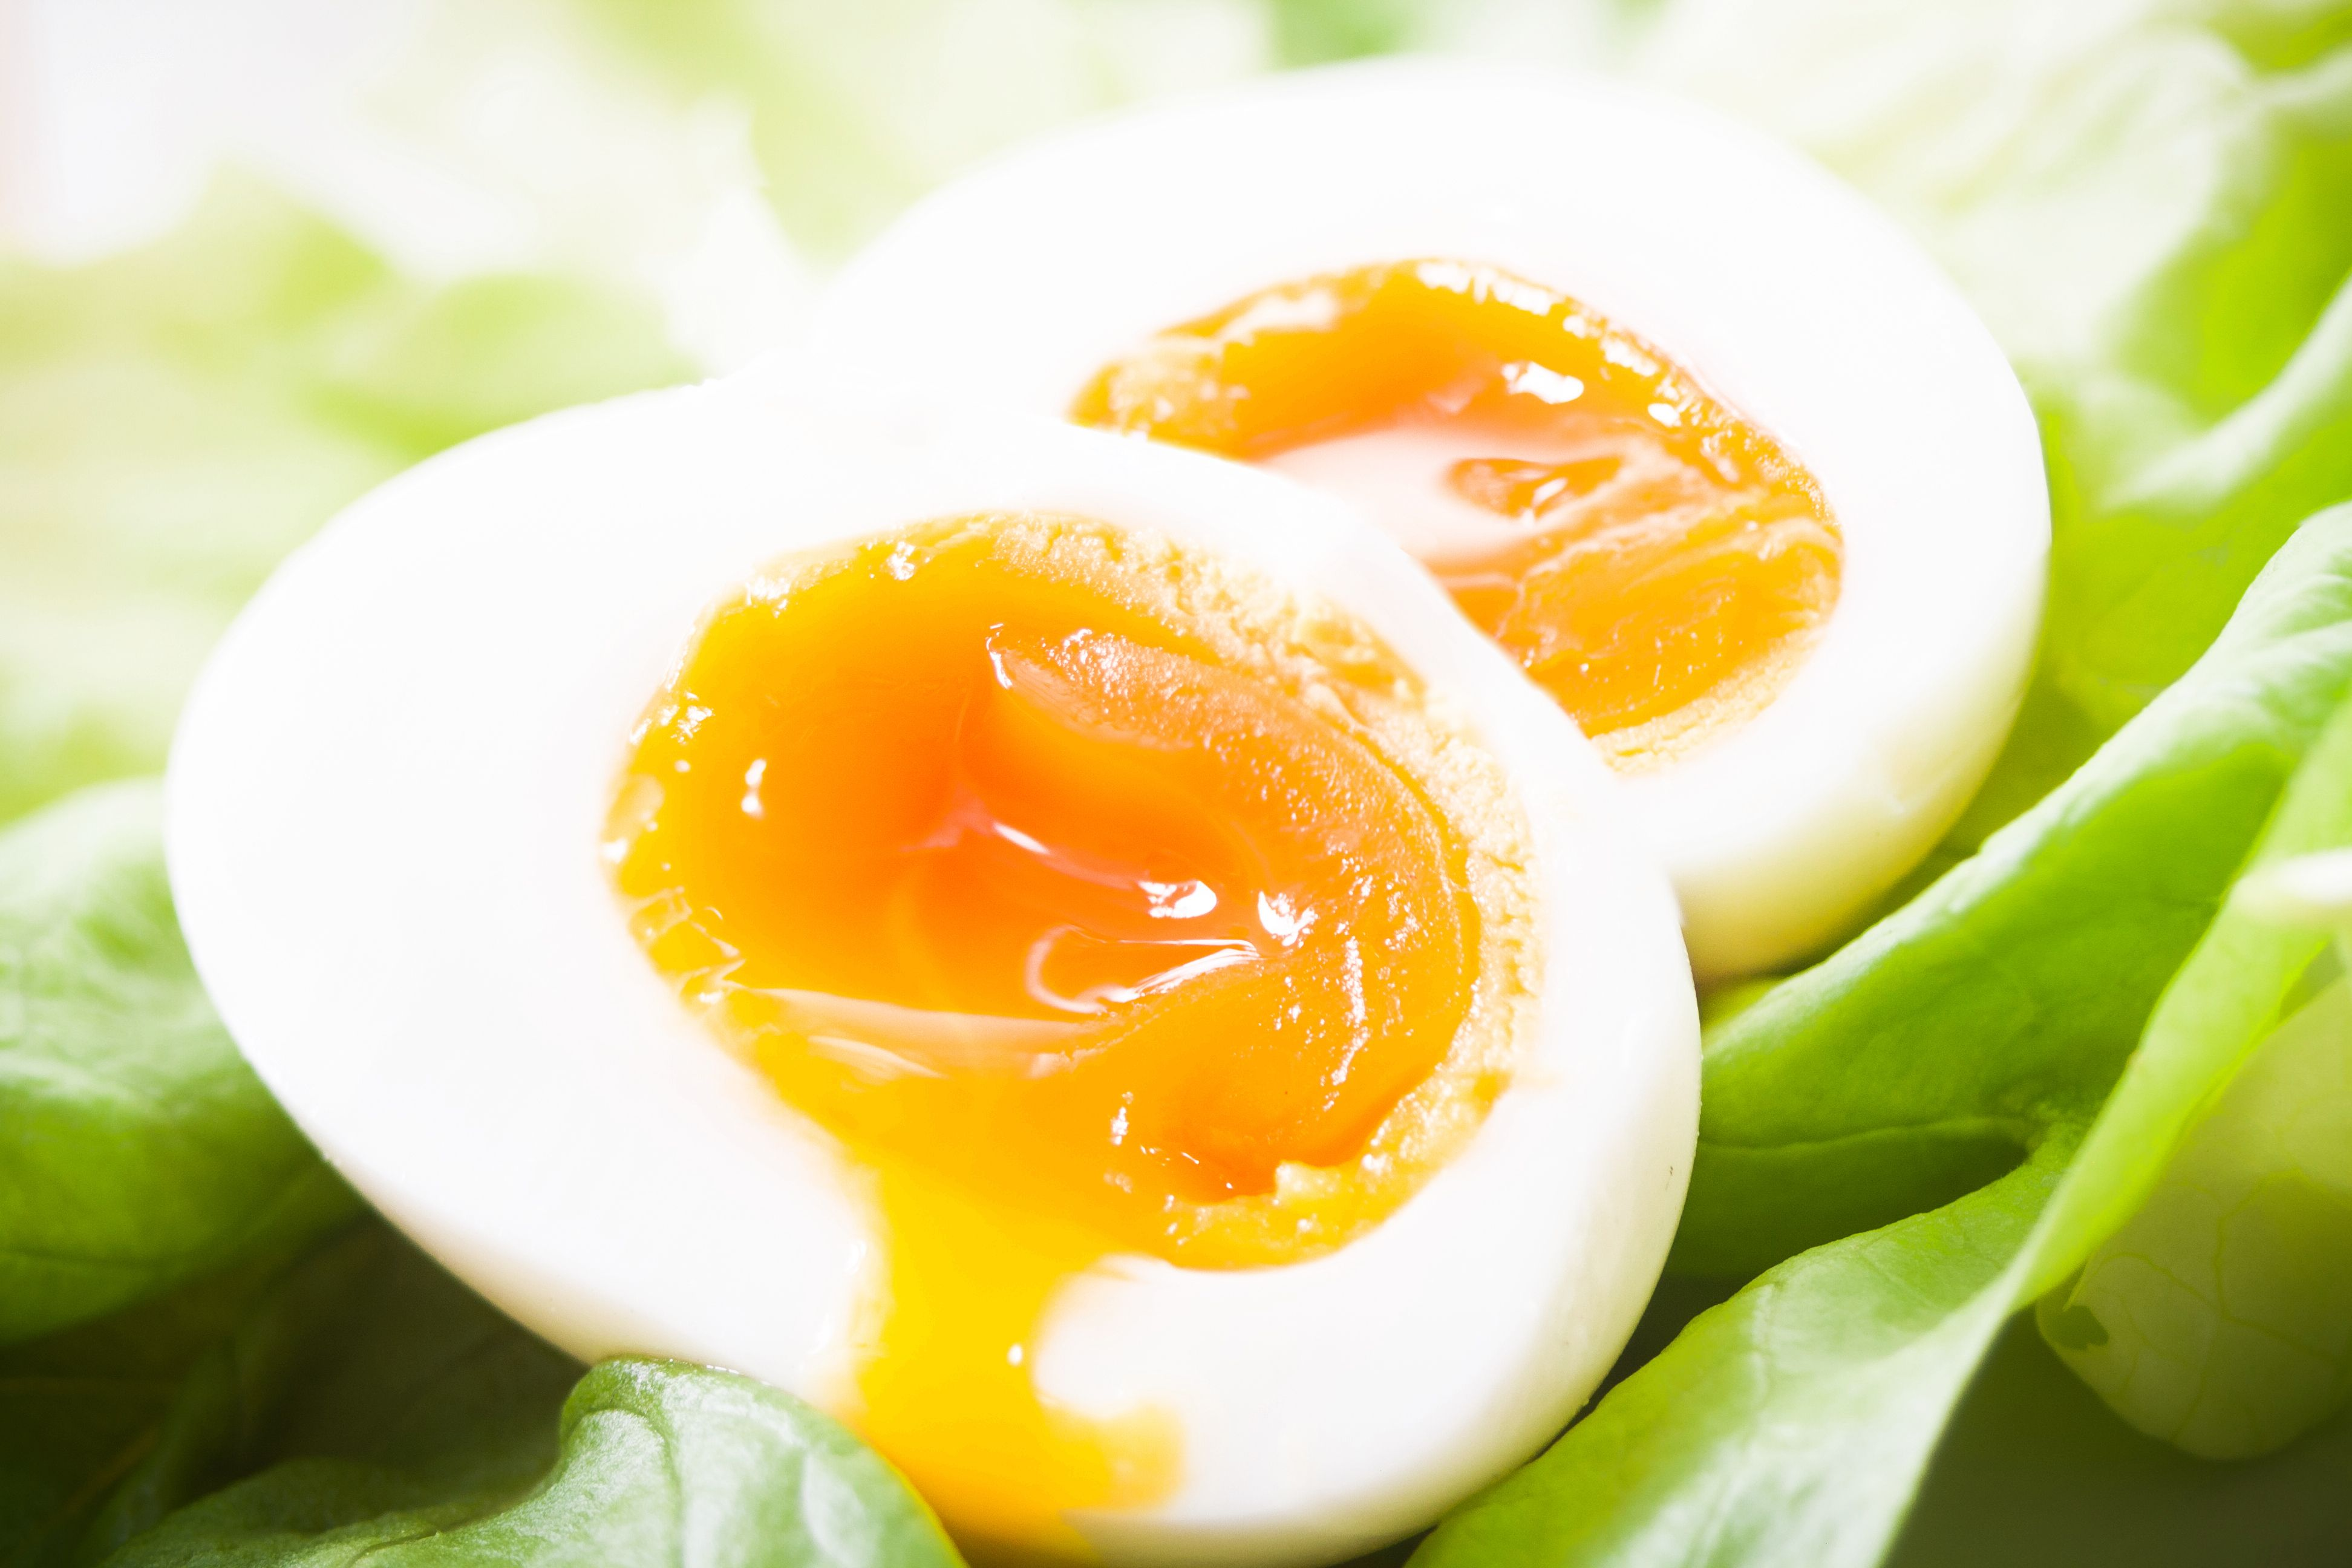 Can Runny Eggs Give You Salmonella? - Are Runny Egg Yolks Raw?